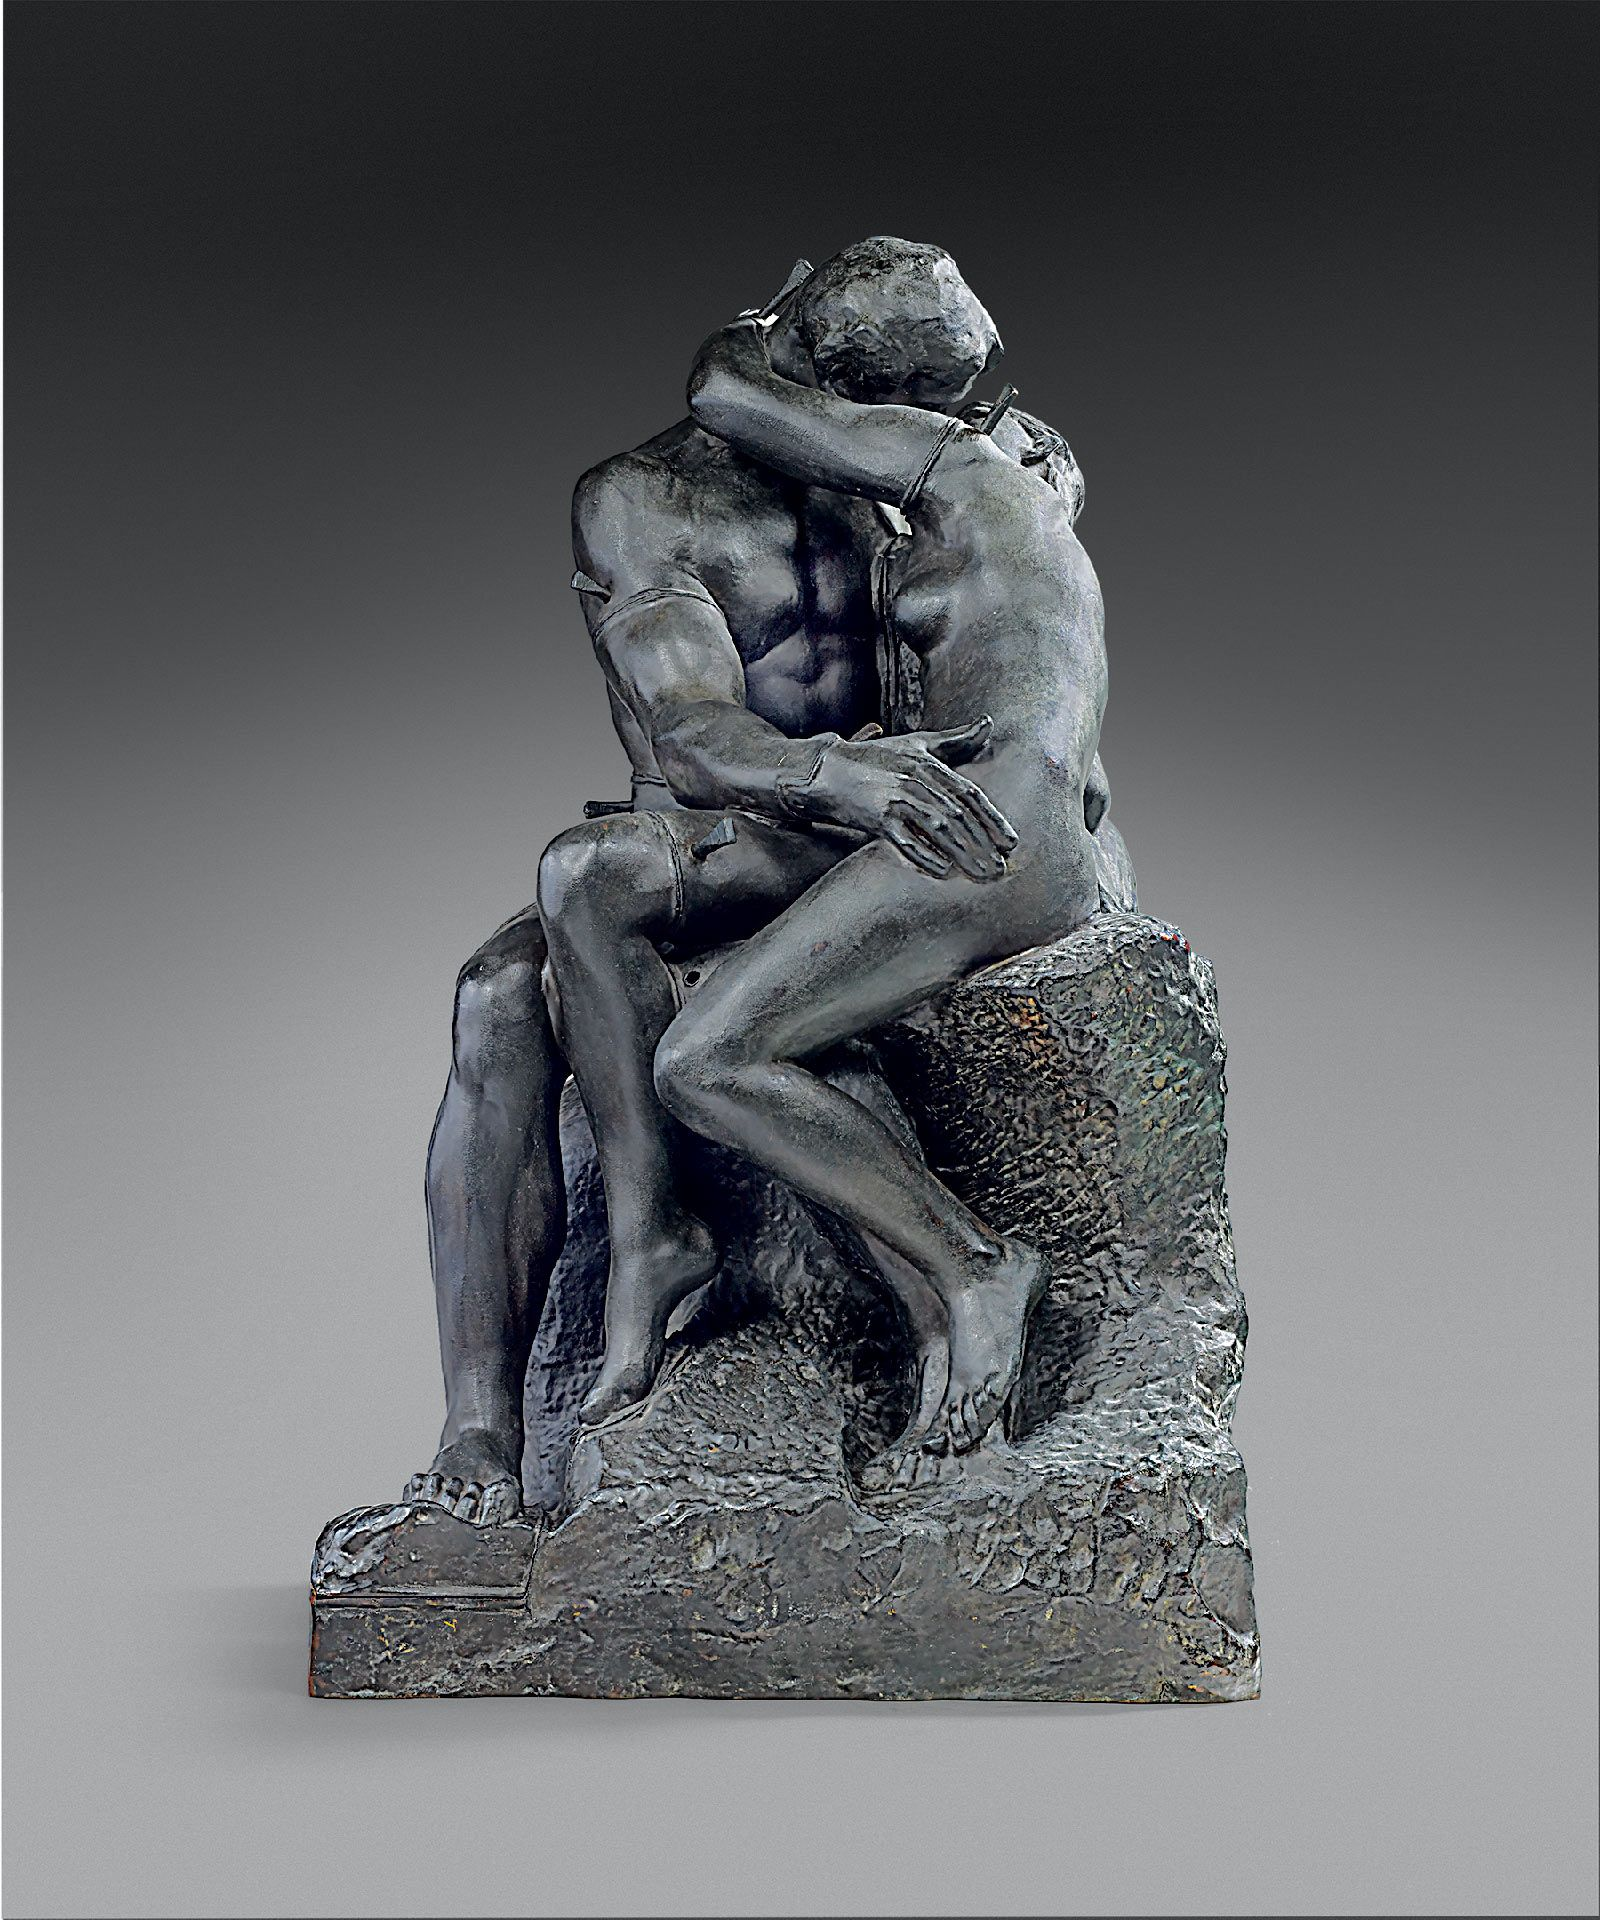 Auguste Rodin, The Kiss, reduction No. 1, master model, 1898, bronze, Barbedienne Foundry, cast 1898, 71.1 x 42.5 x 45 cm. Paris, Musée Rodin. © Musée Rodin (photo Christian Baraja)